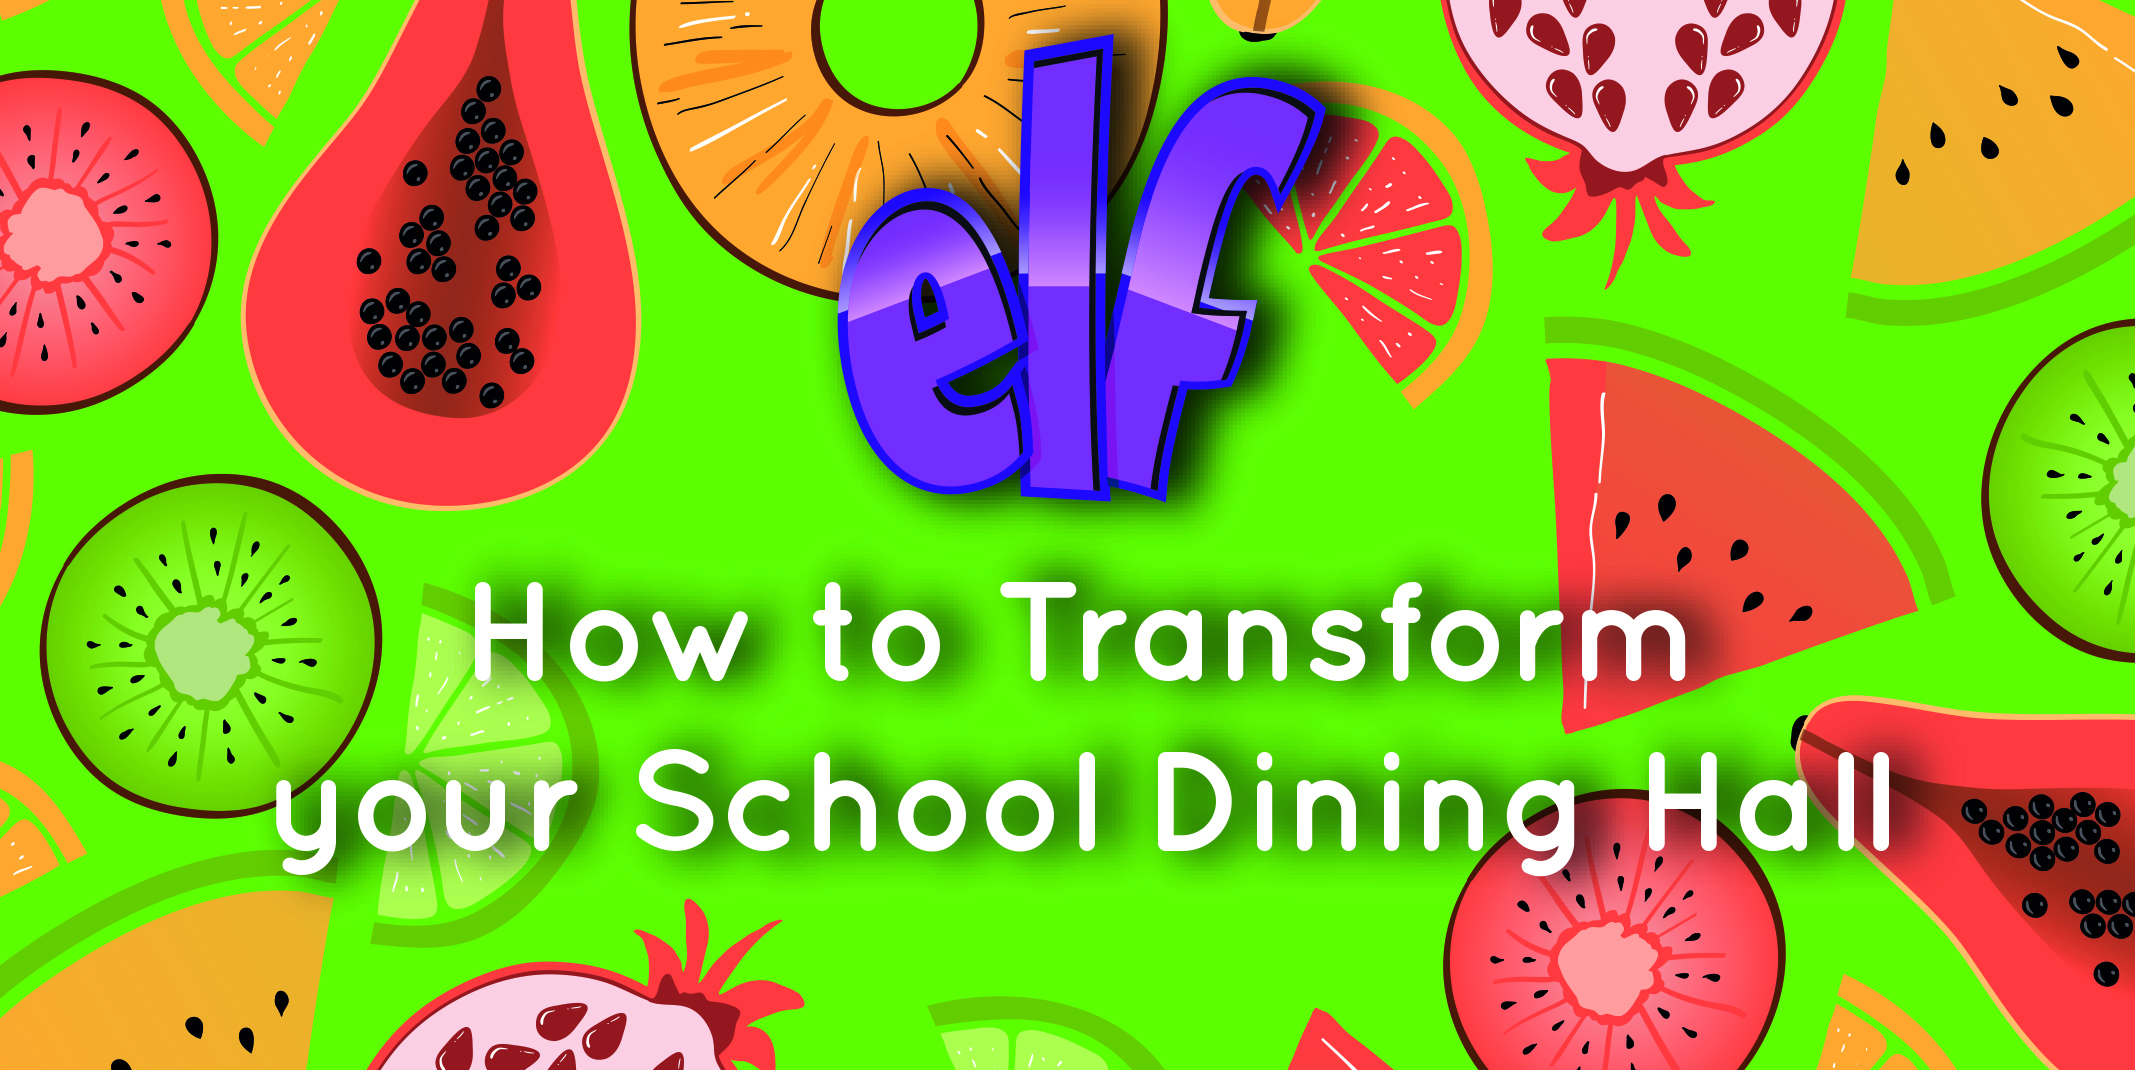 How to Transform Your School Dining Hall